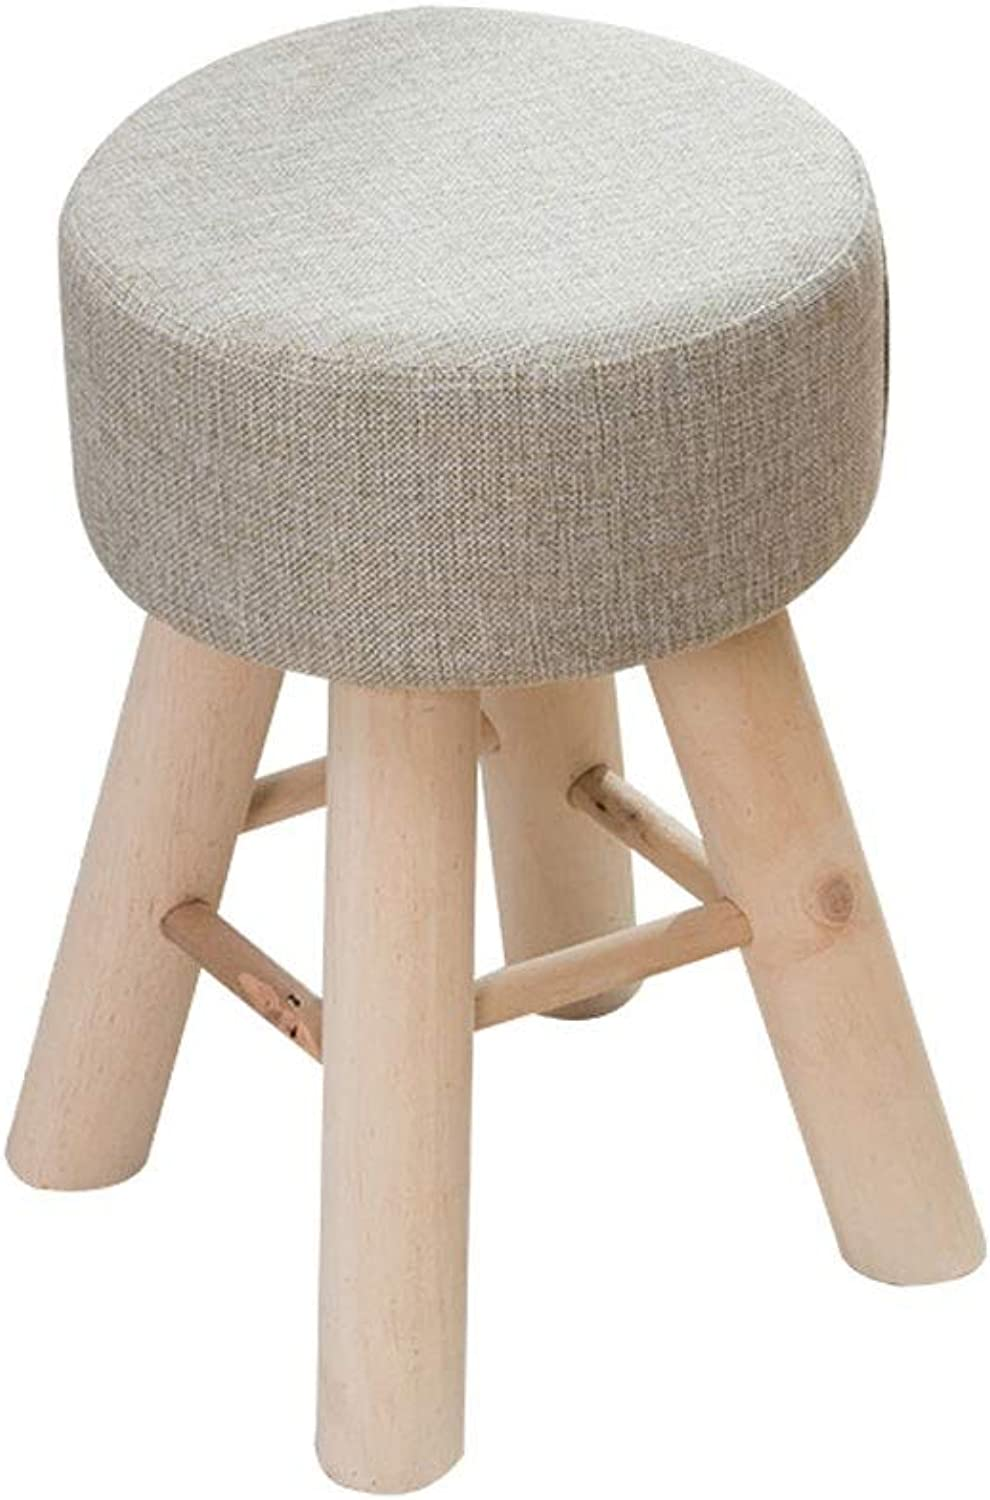 Solid Wood Footstool,Small Bench for Home, Creative Small Chair, Fabric Round Makeup Stool High Rebound Sponge Filling Cushion - 28cmX28cmX43cm (color   Beige)